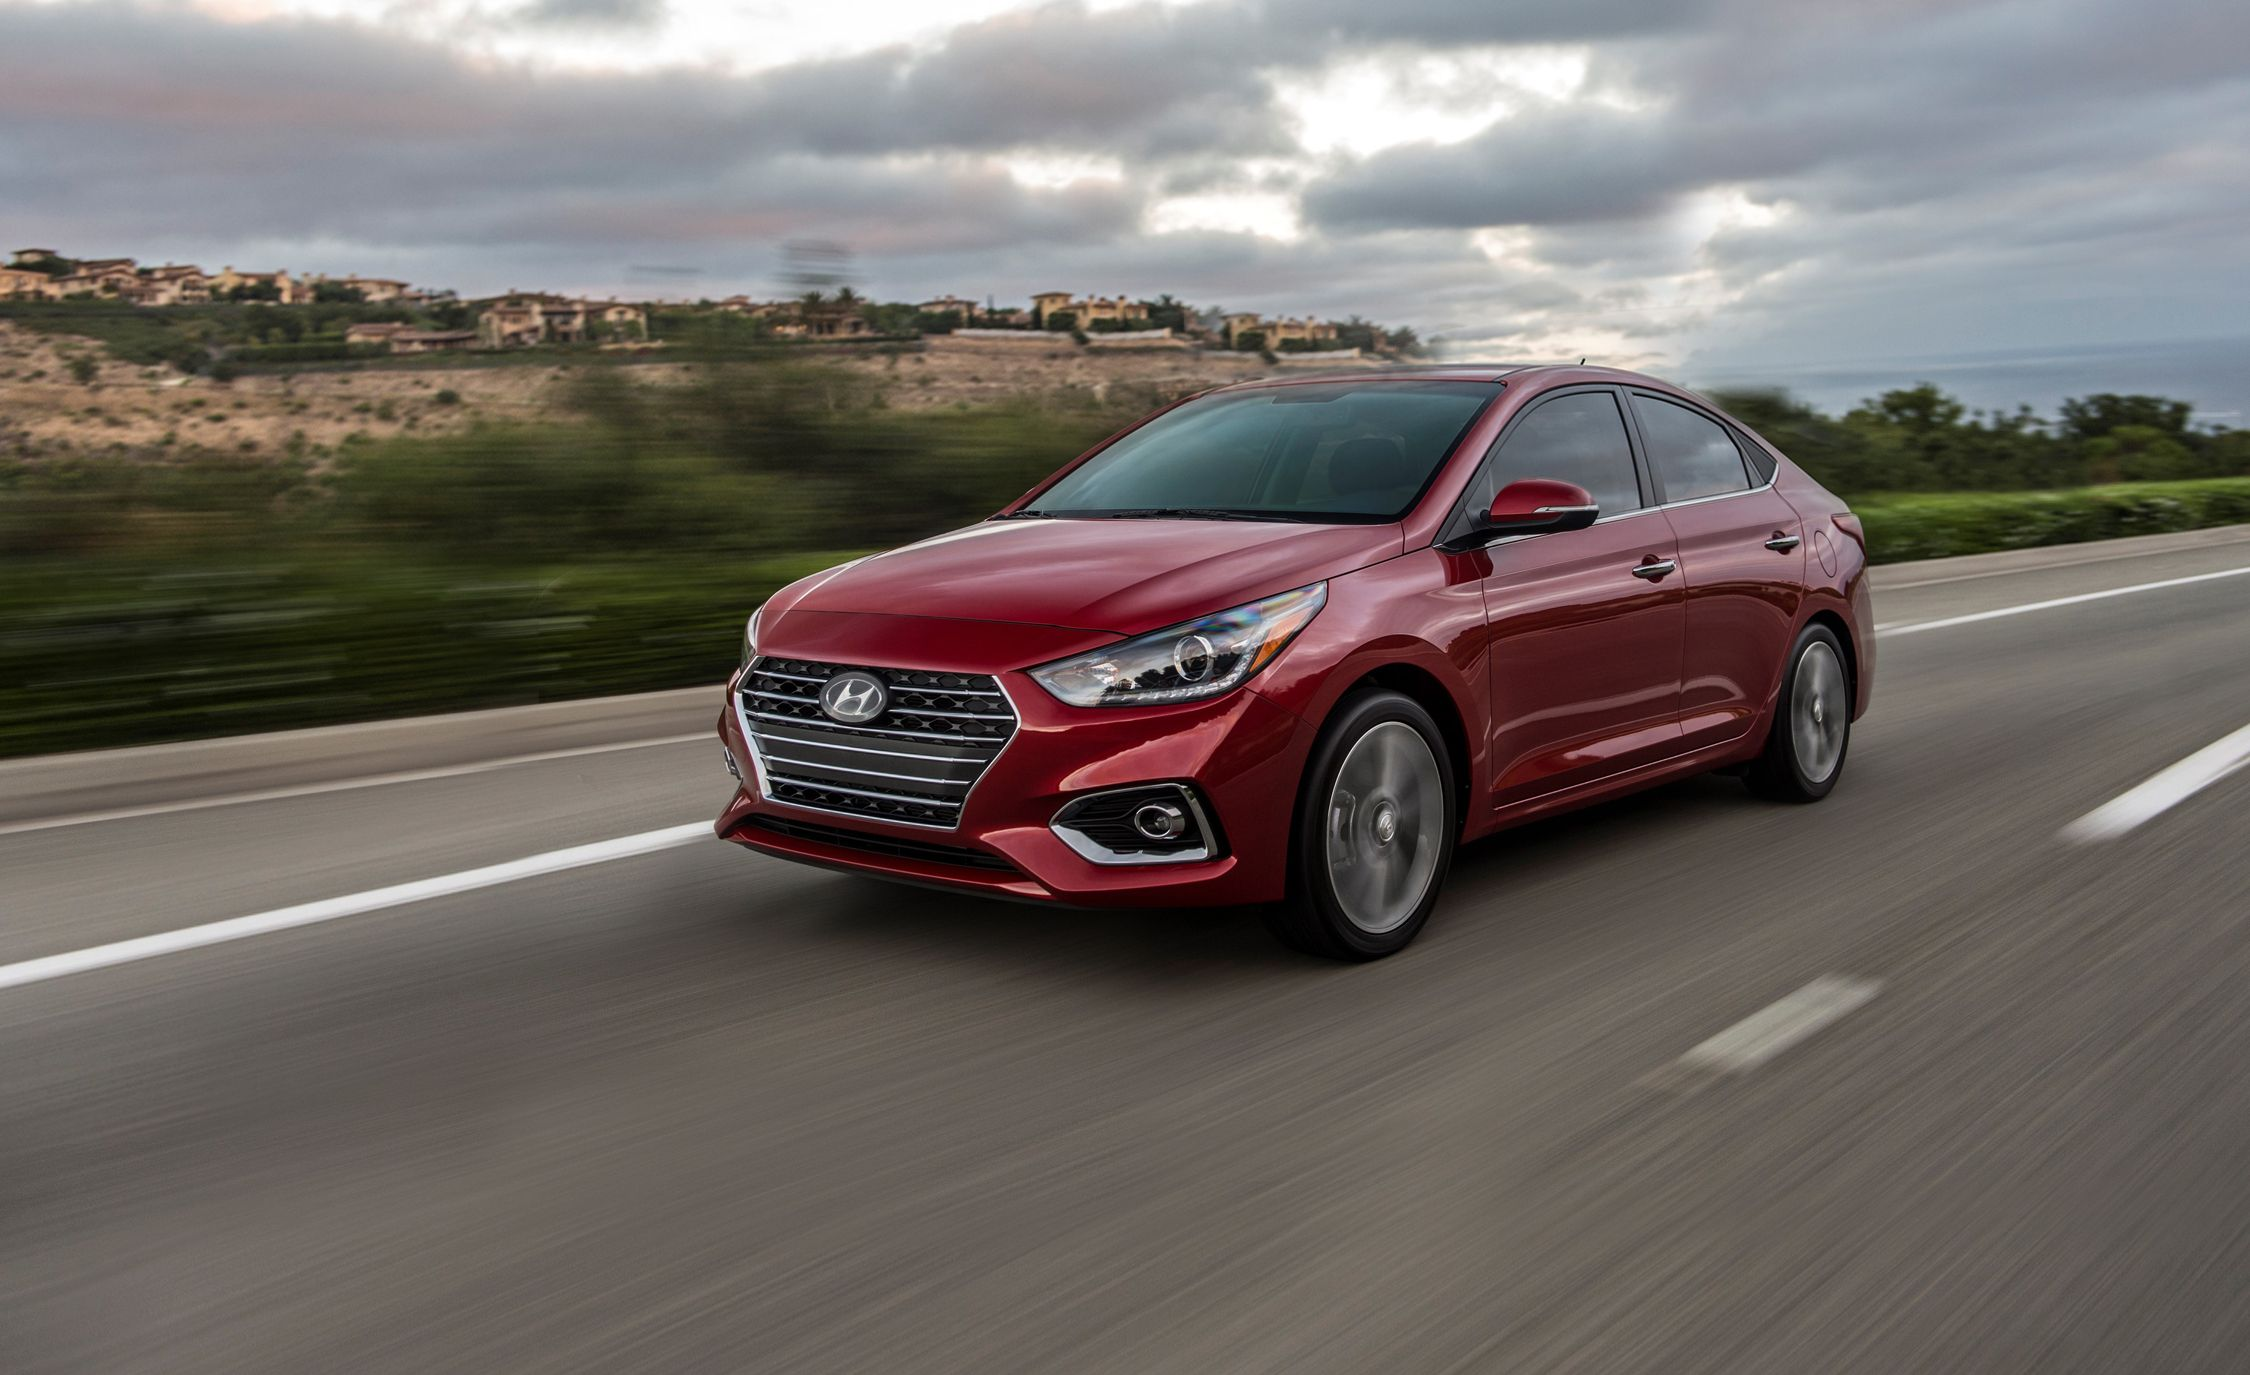 2018 hyundai elantra sedan. Contemporary Sedan In 2018 Hyundai Elantra Sedan